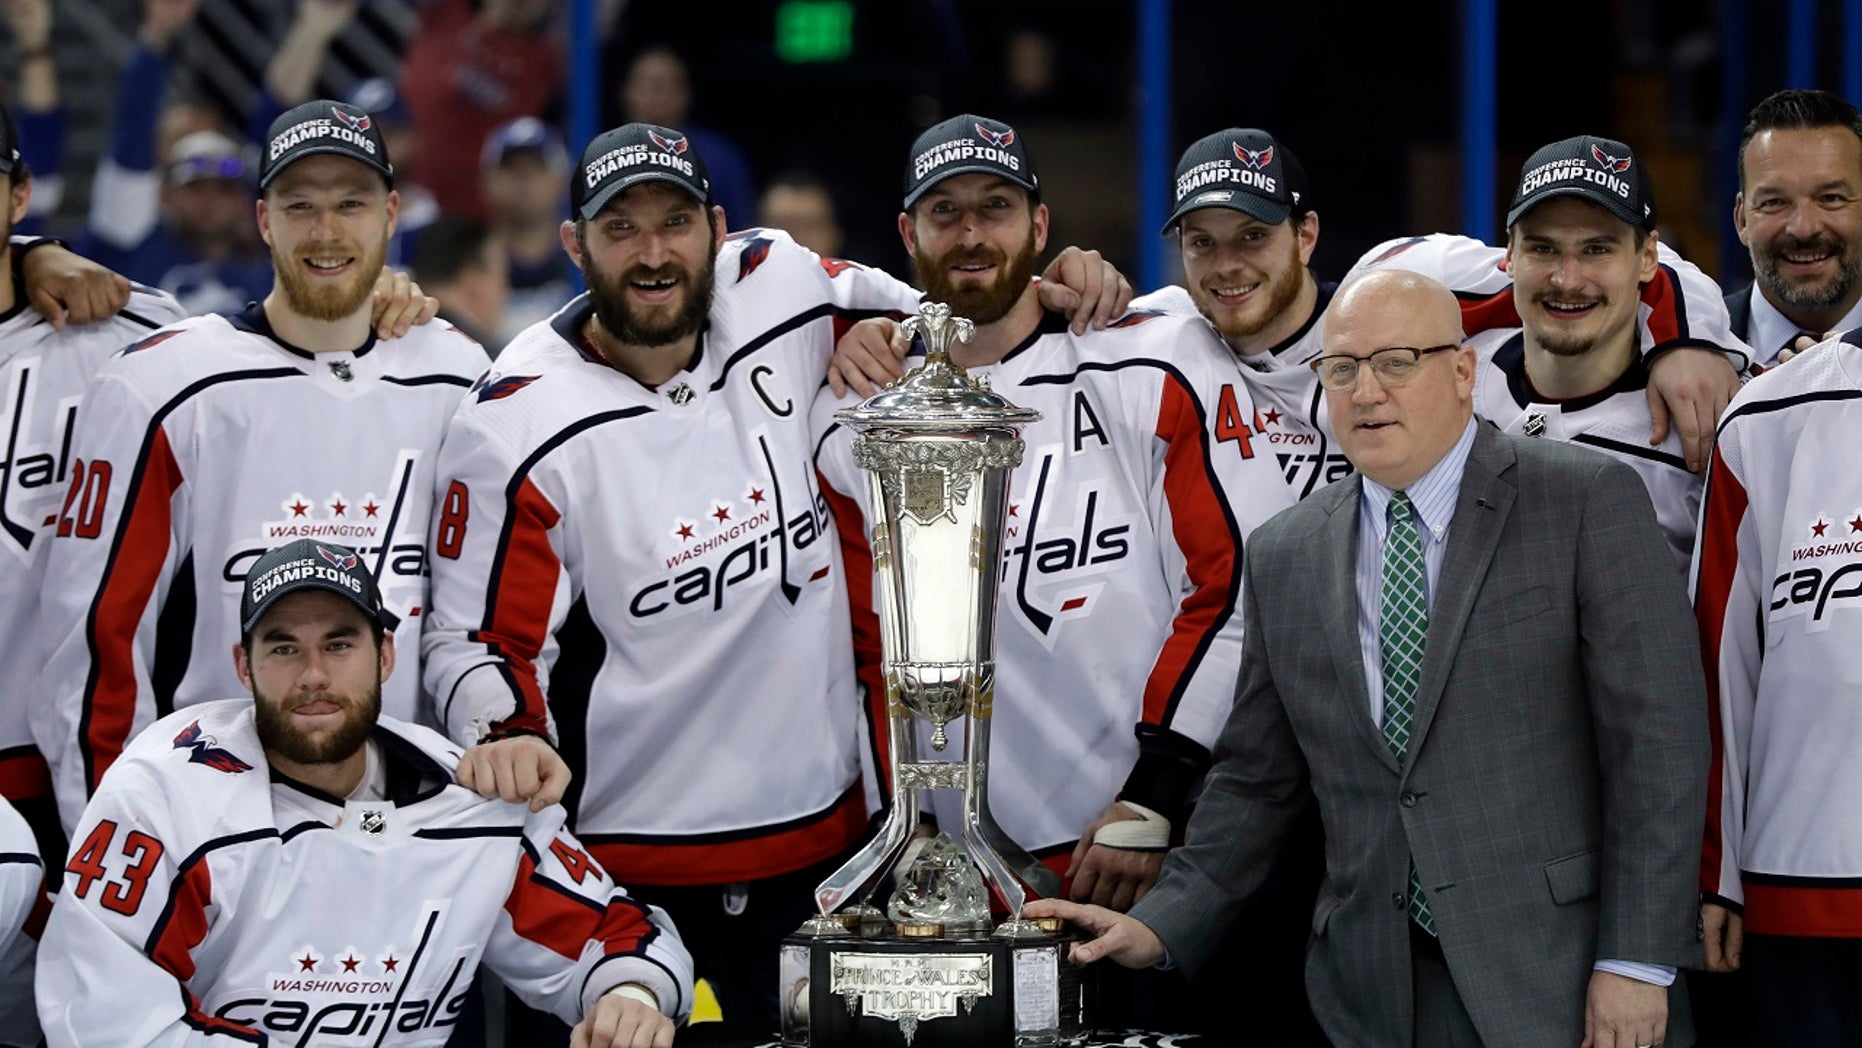 The Washington Capitals pose with the NHL's Eastern Conference championship trophy after eliminating Tampa Bay on Wednesday night.